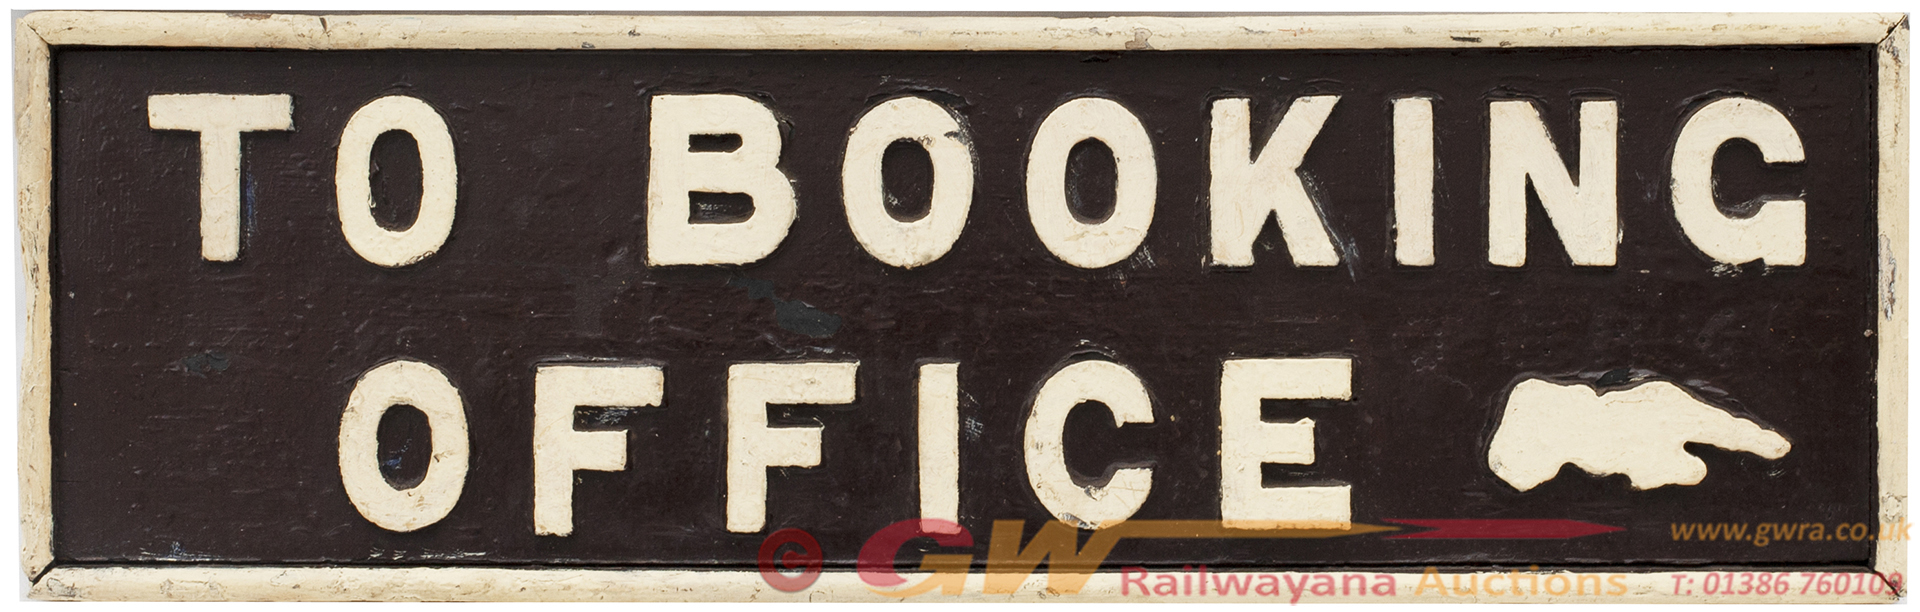 GWR Platform Sign TO BOOKING OFFICE With Pointing